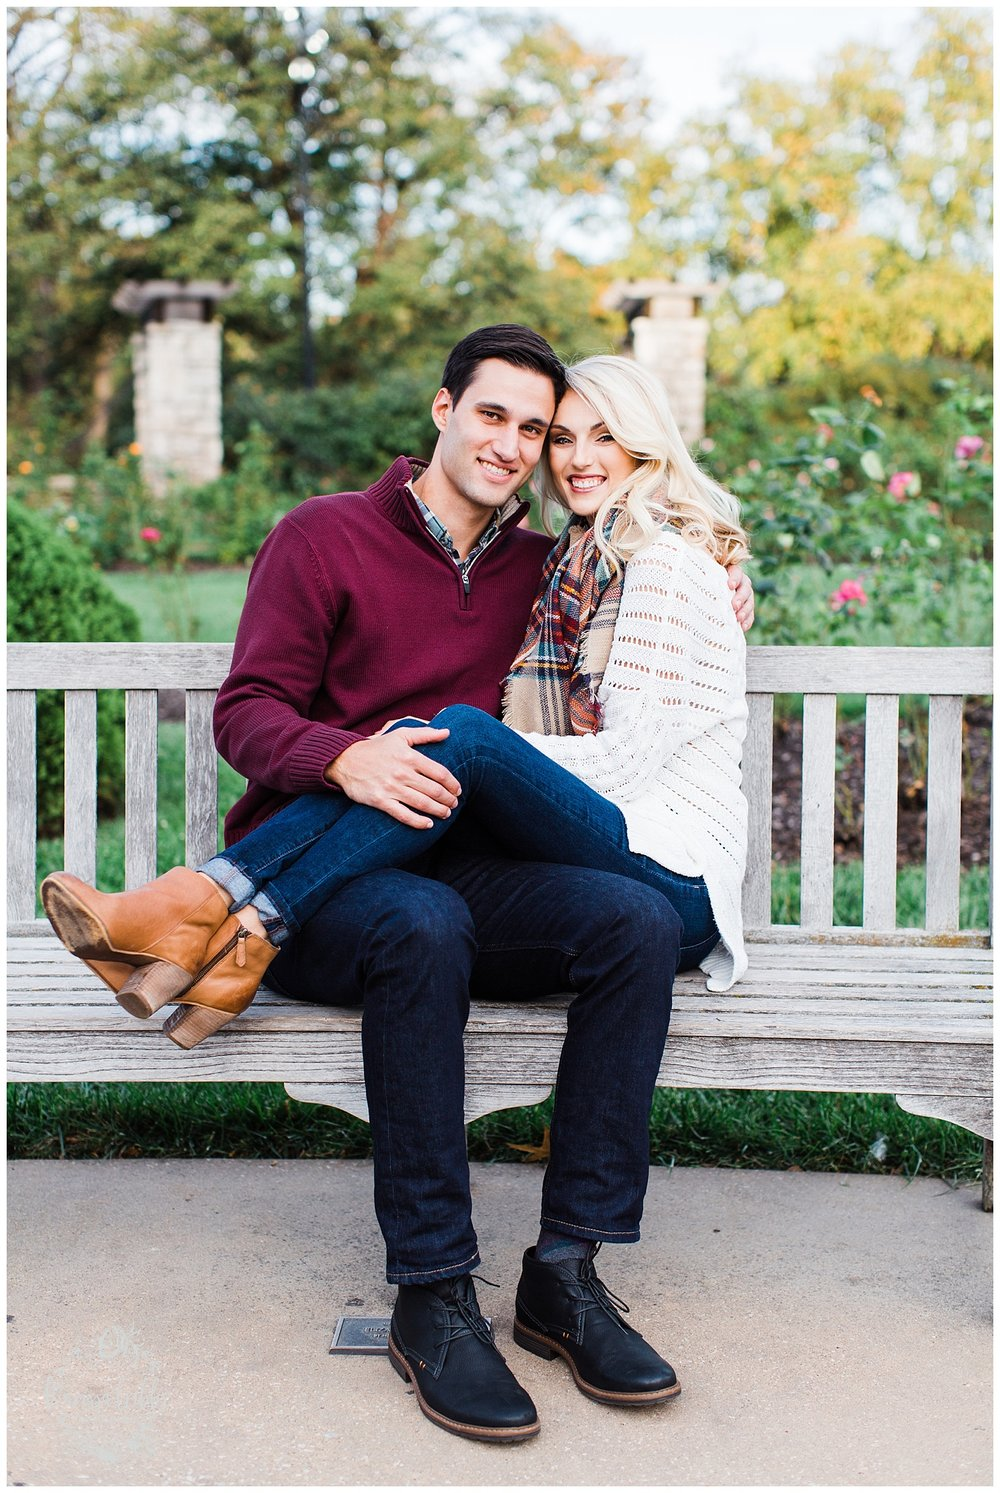 CLOE & GABE LIBERTY MEMORIAL ENGAGEMENT | MARISSA CRIBBS PHOTOGRAPHY | LOOSE PARK ENGAGEMENT_3458.jpg